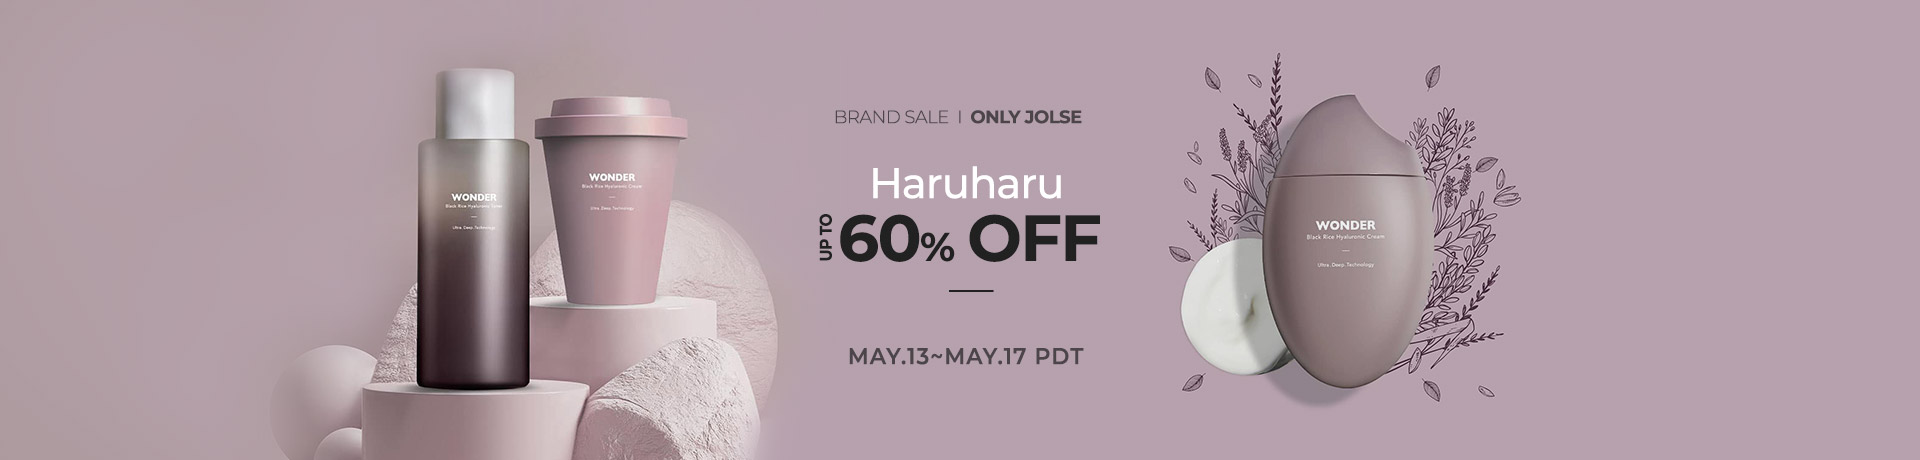 Haruharu Up to 60% OFF